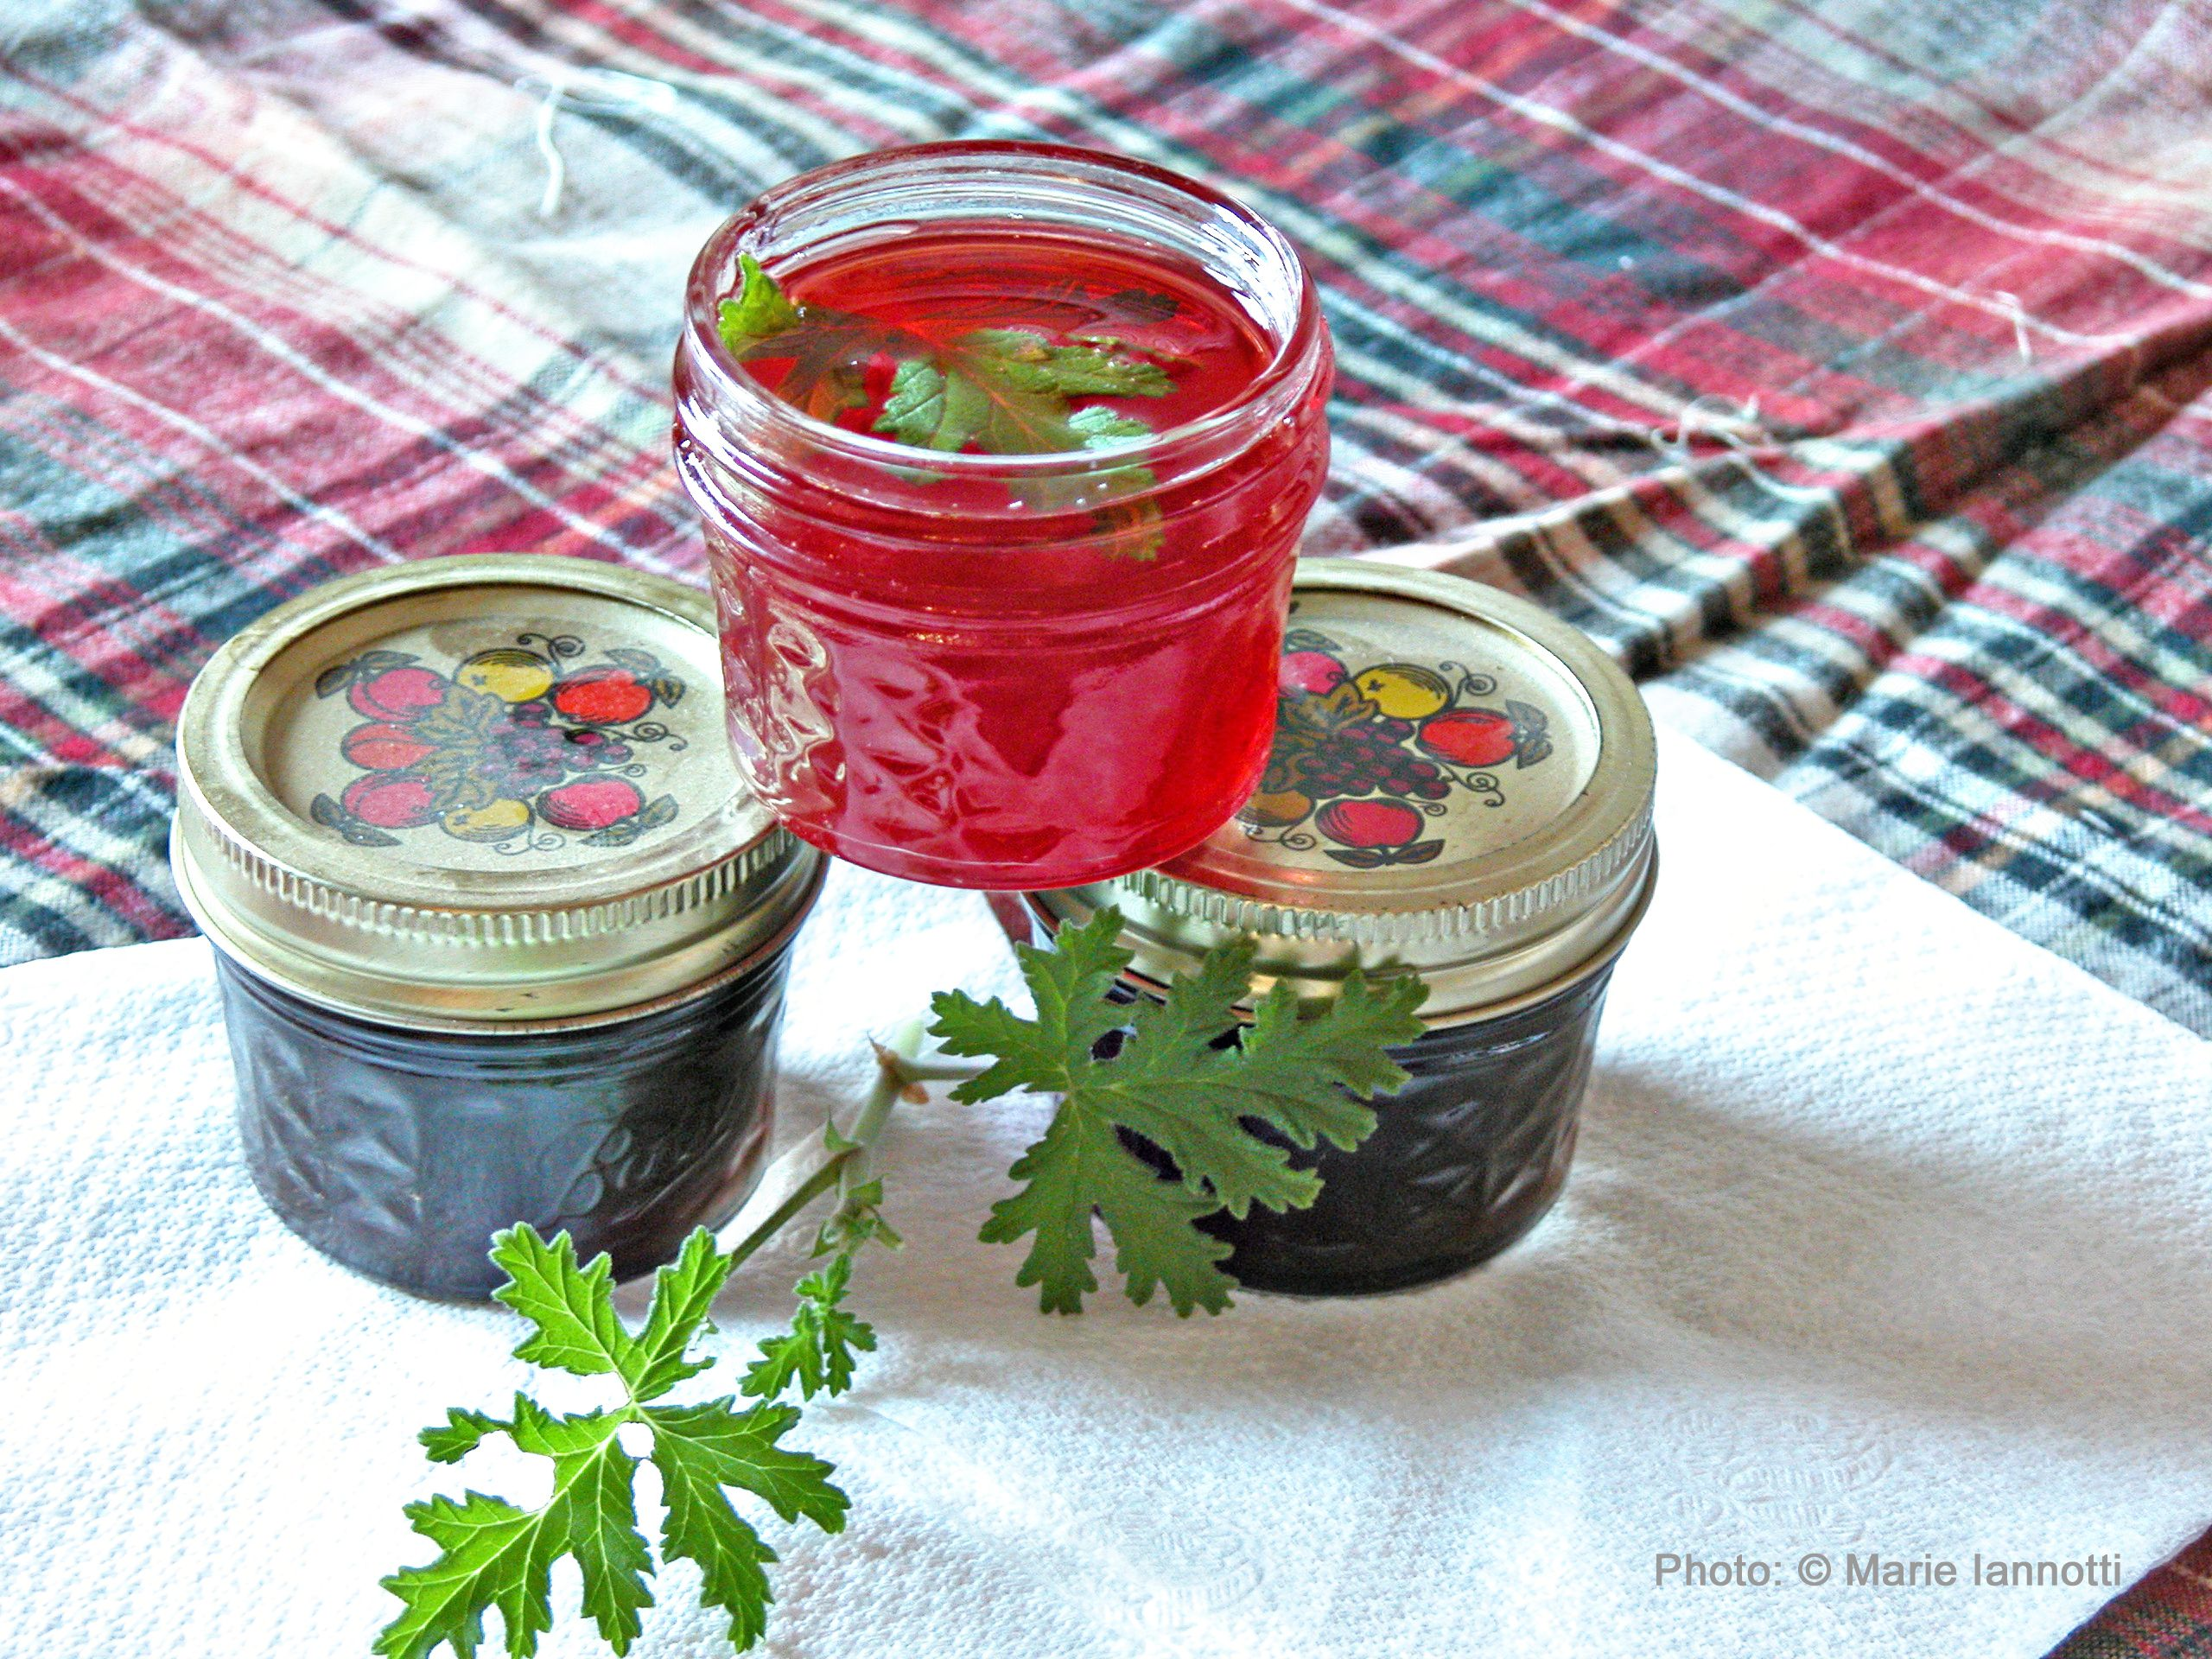 Herbal jellies in an assortment of flavors